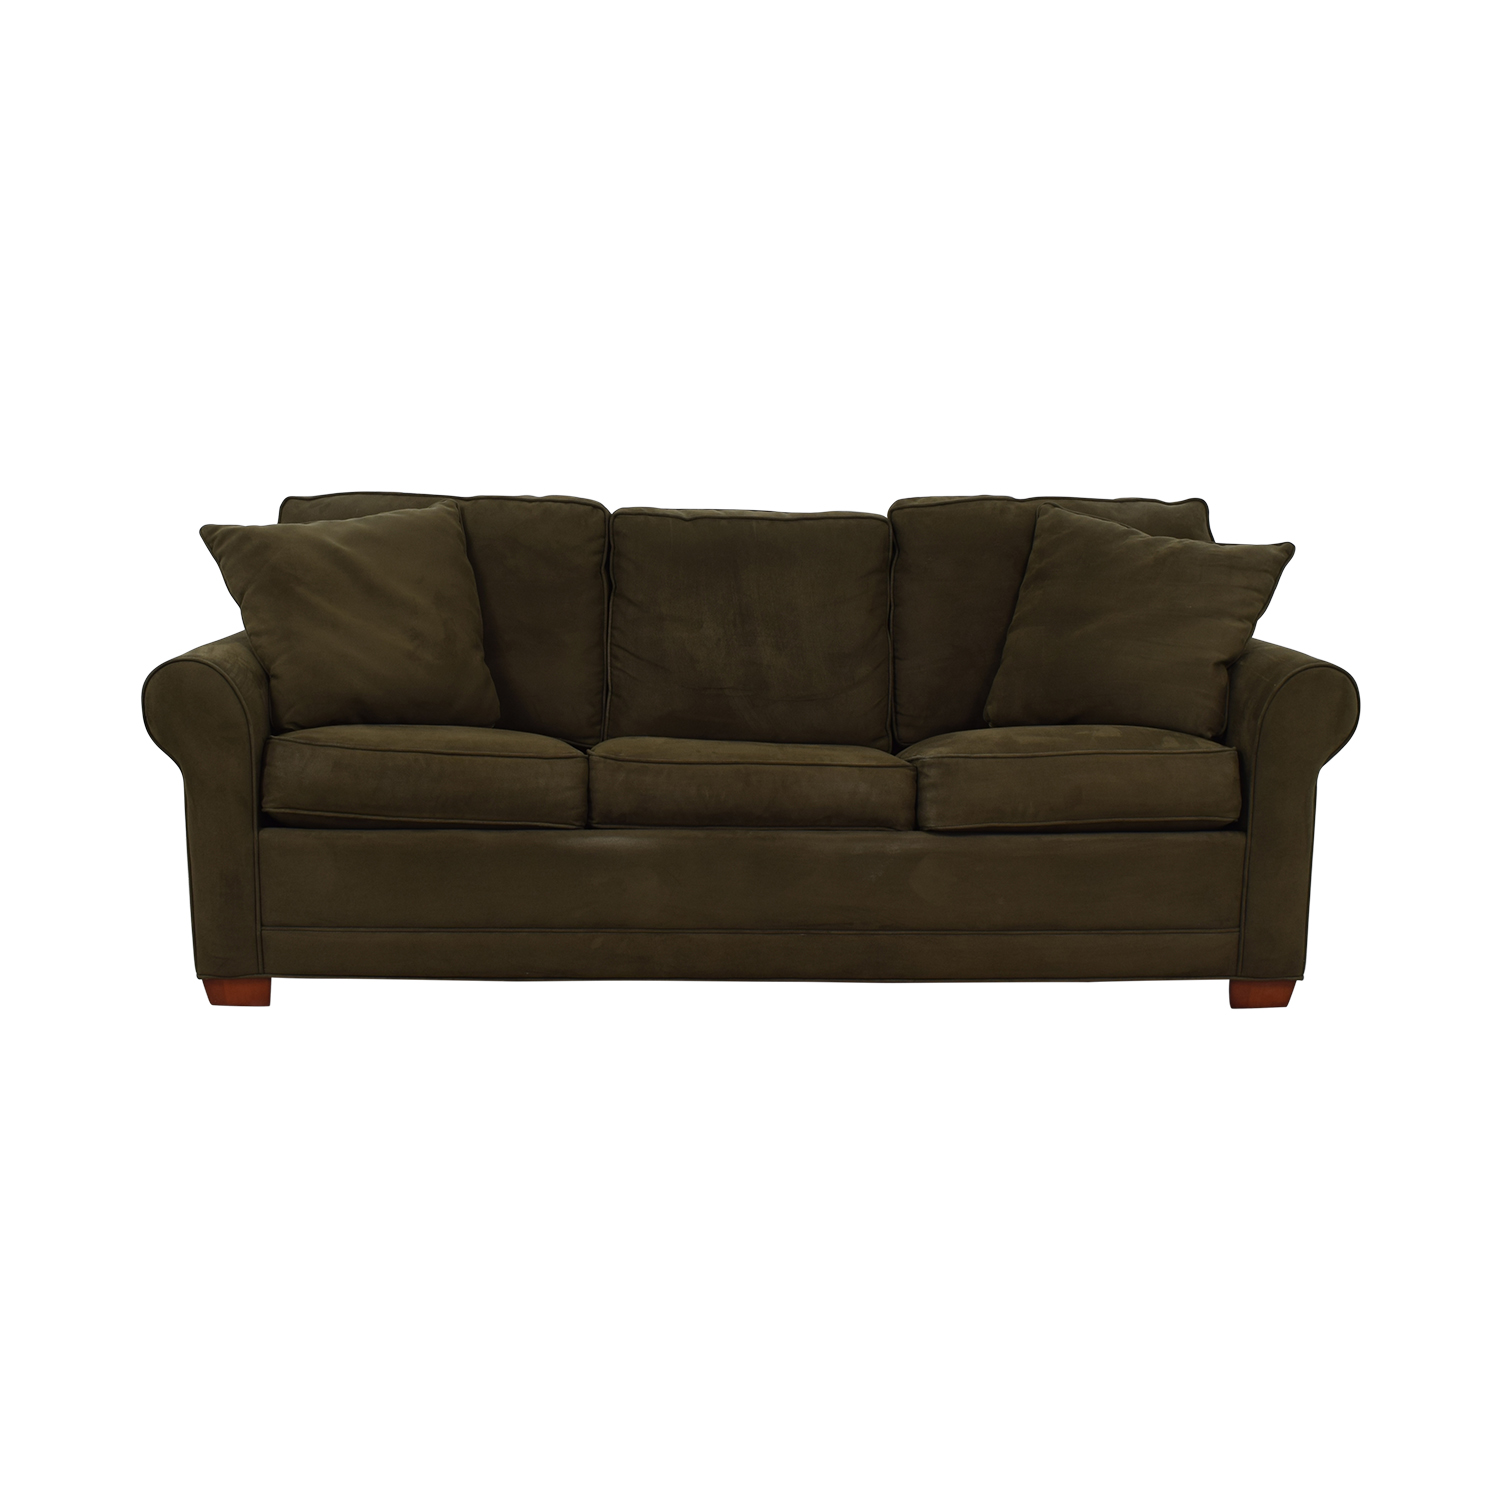 shop Raymour & Flanigan Raymour & Flanigan Brown Microfiber Convertible Three-Cushion Sofa online